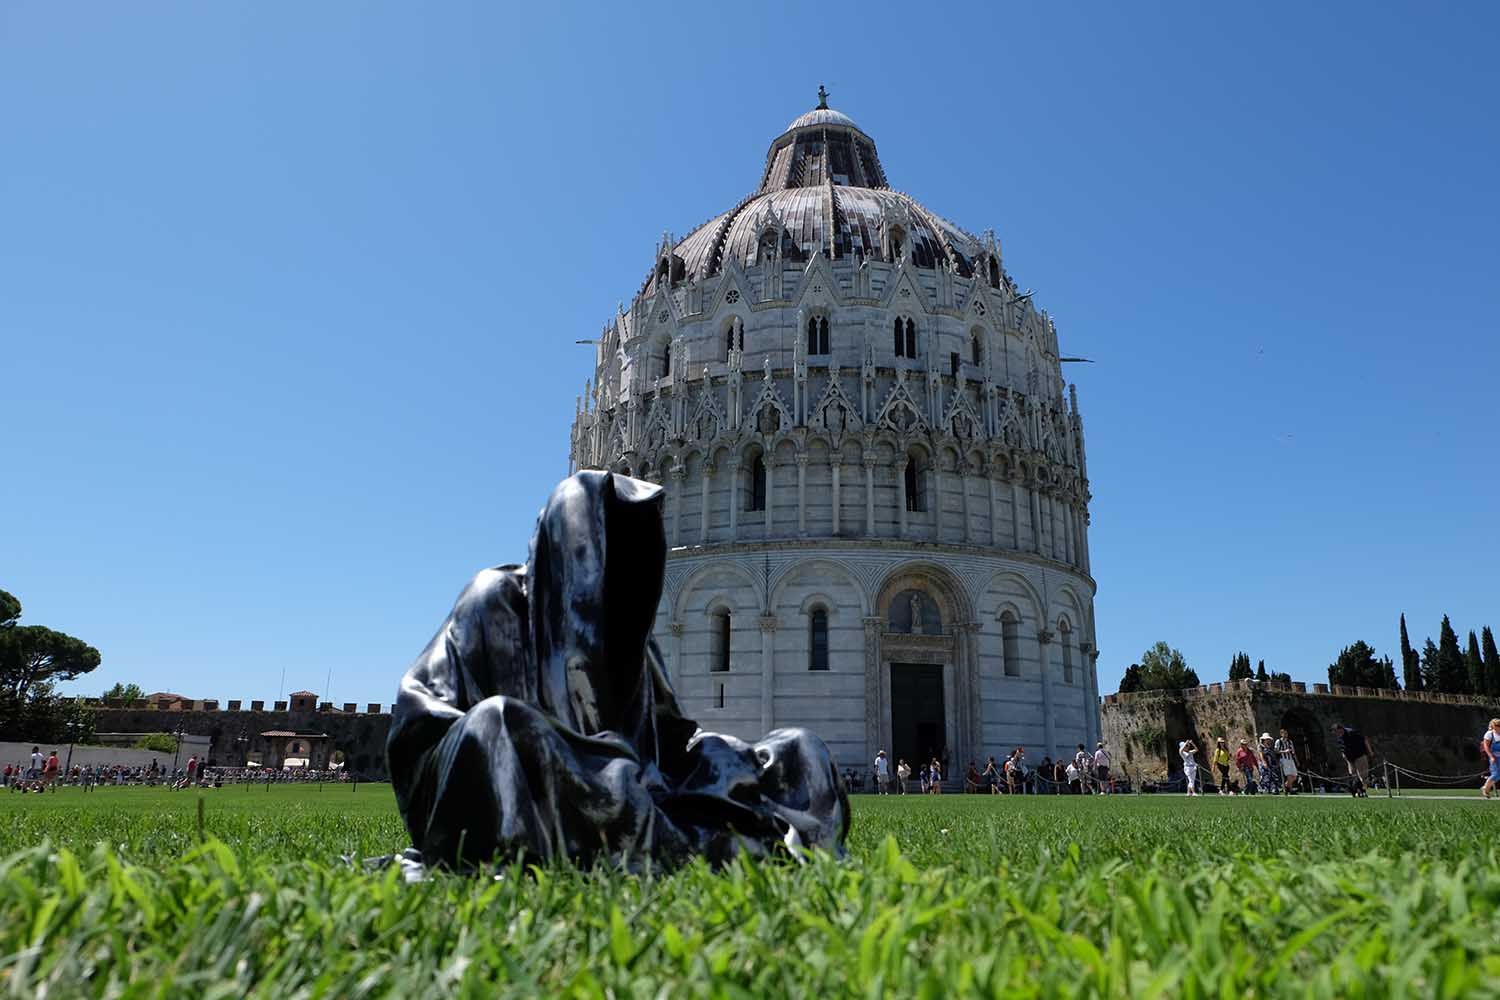 leaning tower of pisa italia guardians of time manfred kielnhofer contemporary fine art modern statue exclusive arts sculpture 3557